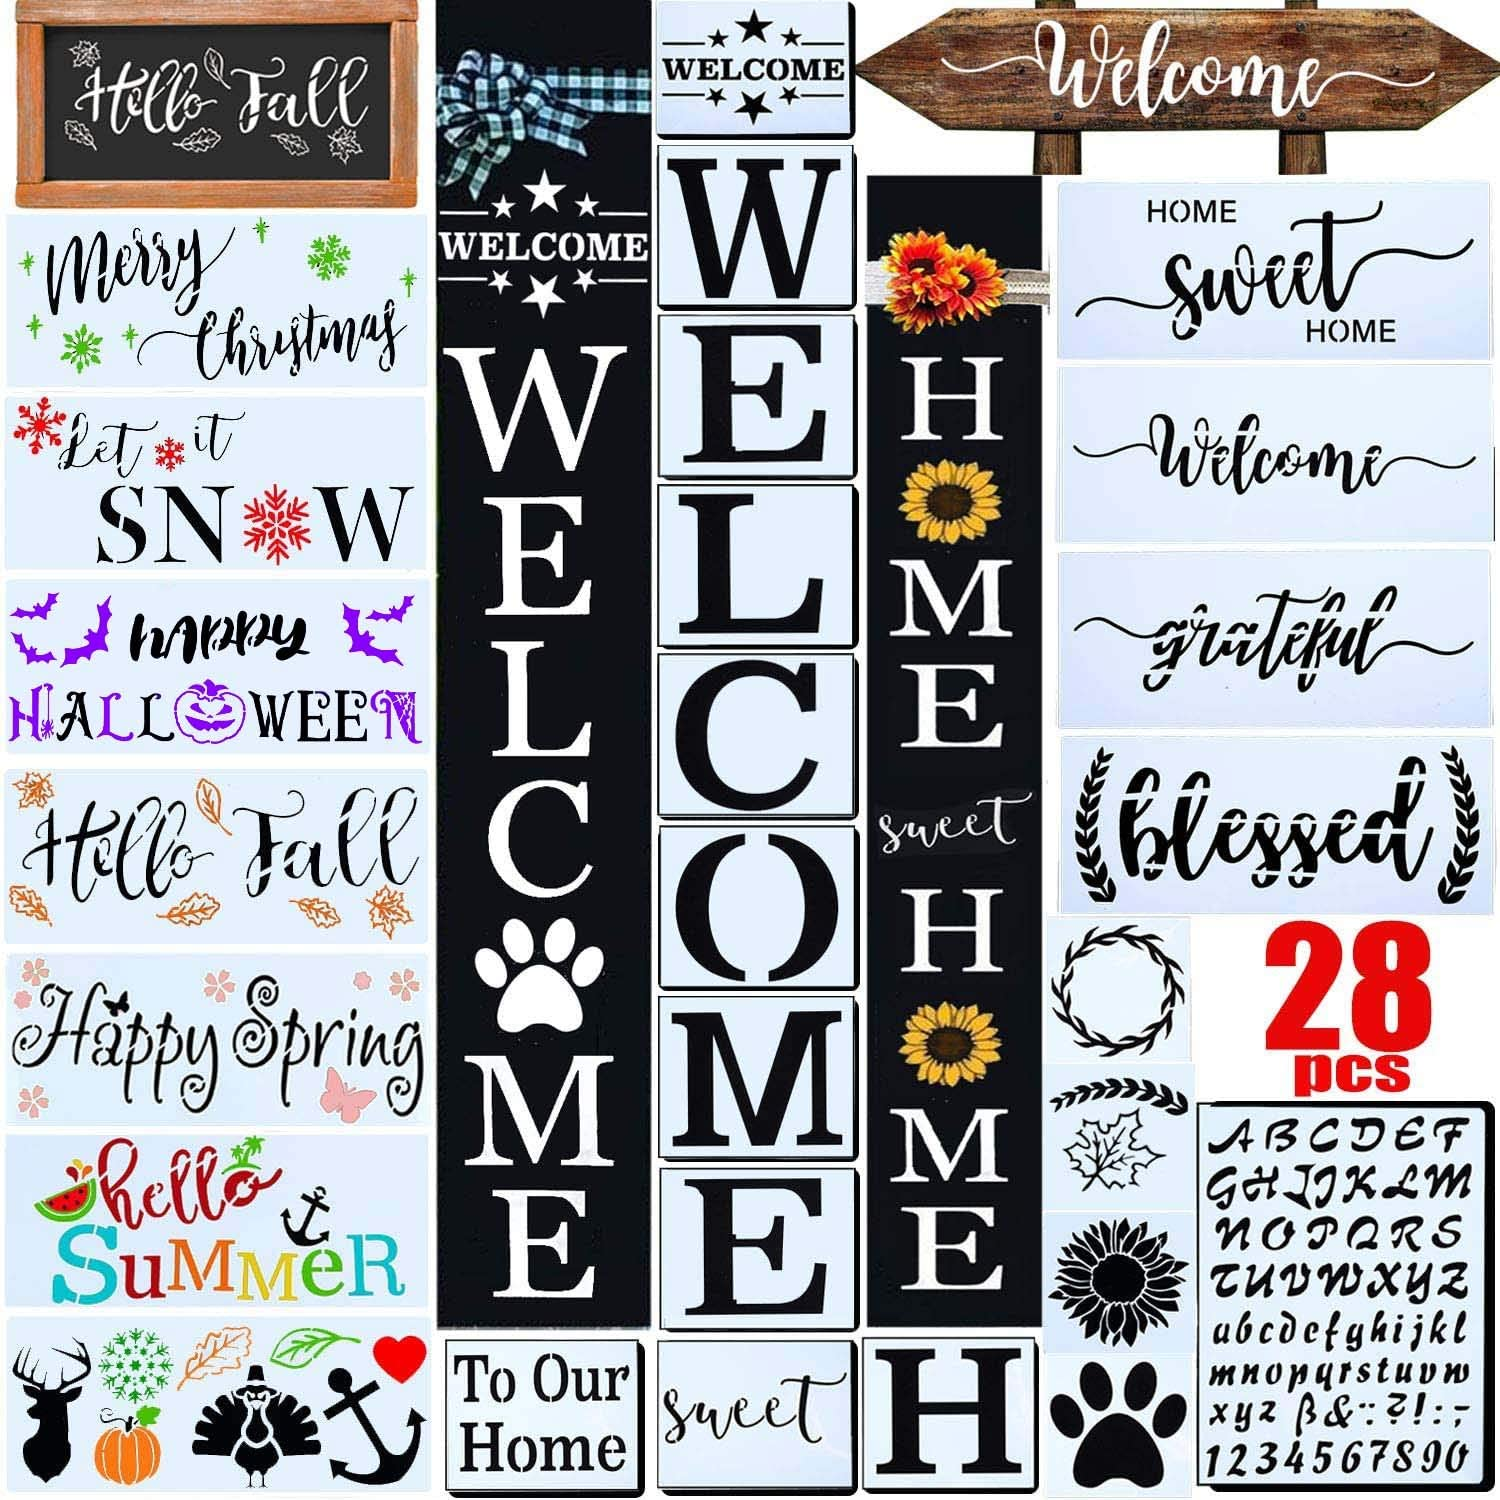 28 PCS Welcome Stencil for Painting on Wood,Home Sign Stencils Reusable Porch Sign and Front Door Vertical Welcome Comes with Stencil-Sunflower,Dog Paw Stencil and orther Pattern (Style 1)